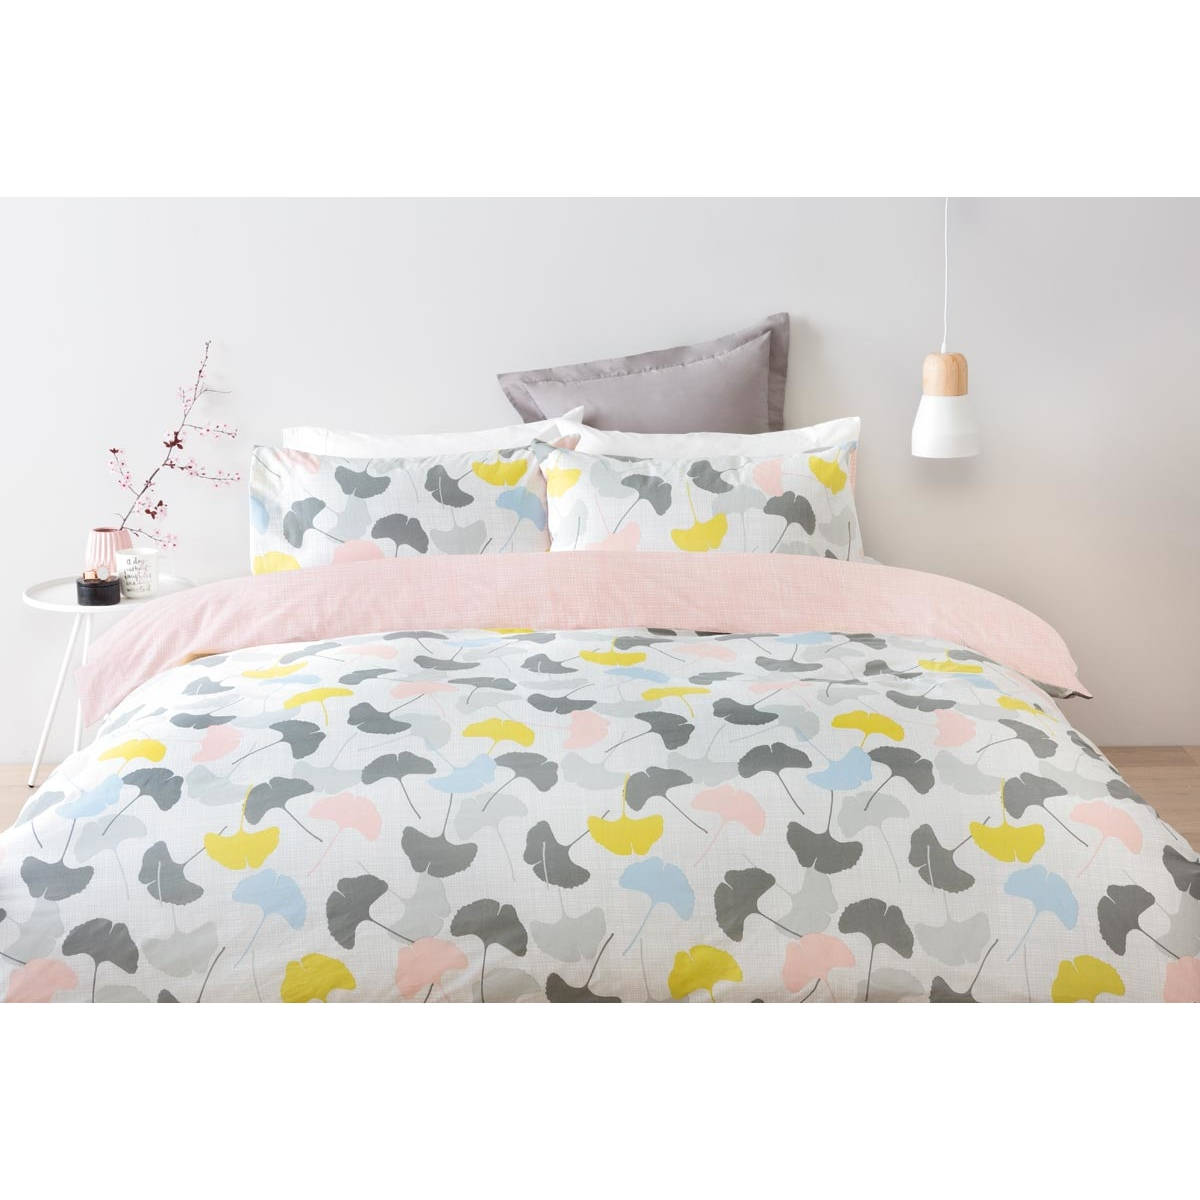 West Elm Duvet Cover | White Duvet Cover Queen | Duvet Cover King